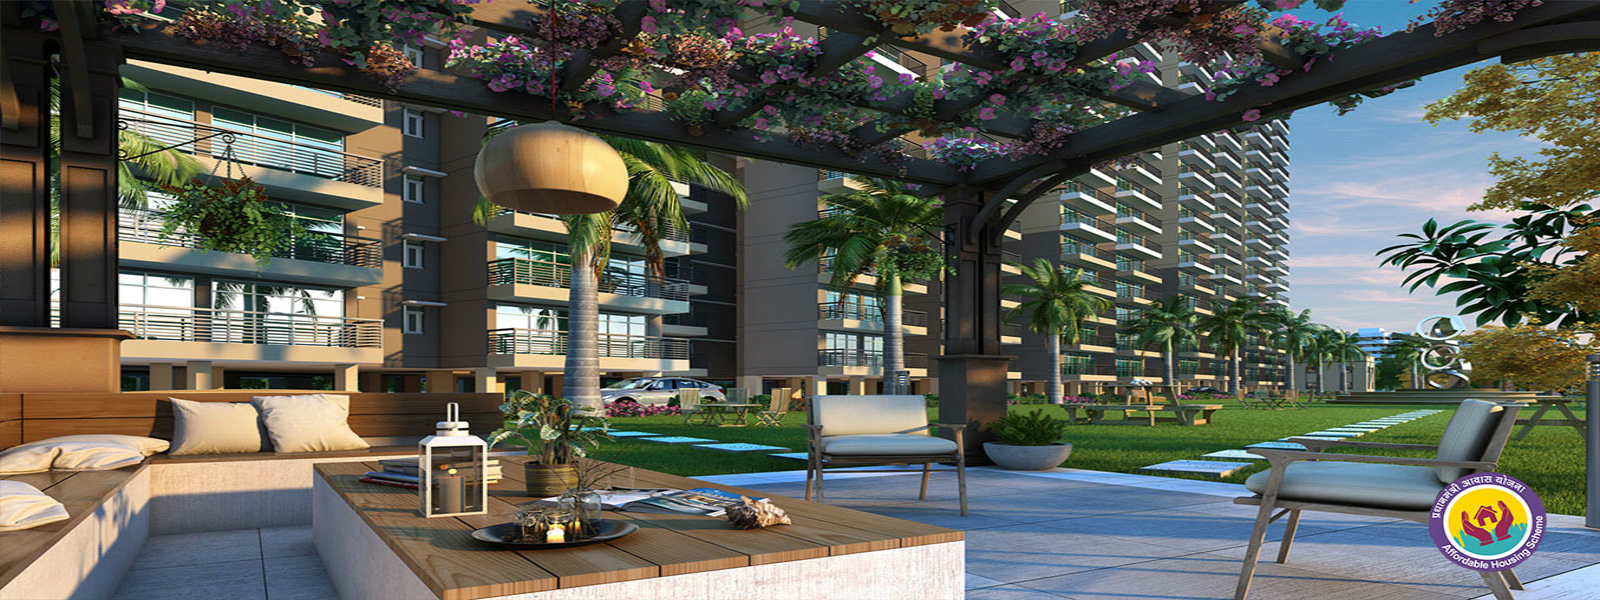 Global Hill View Sohna Gurgaon